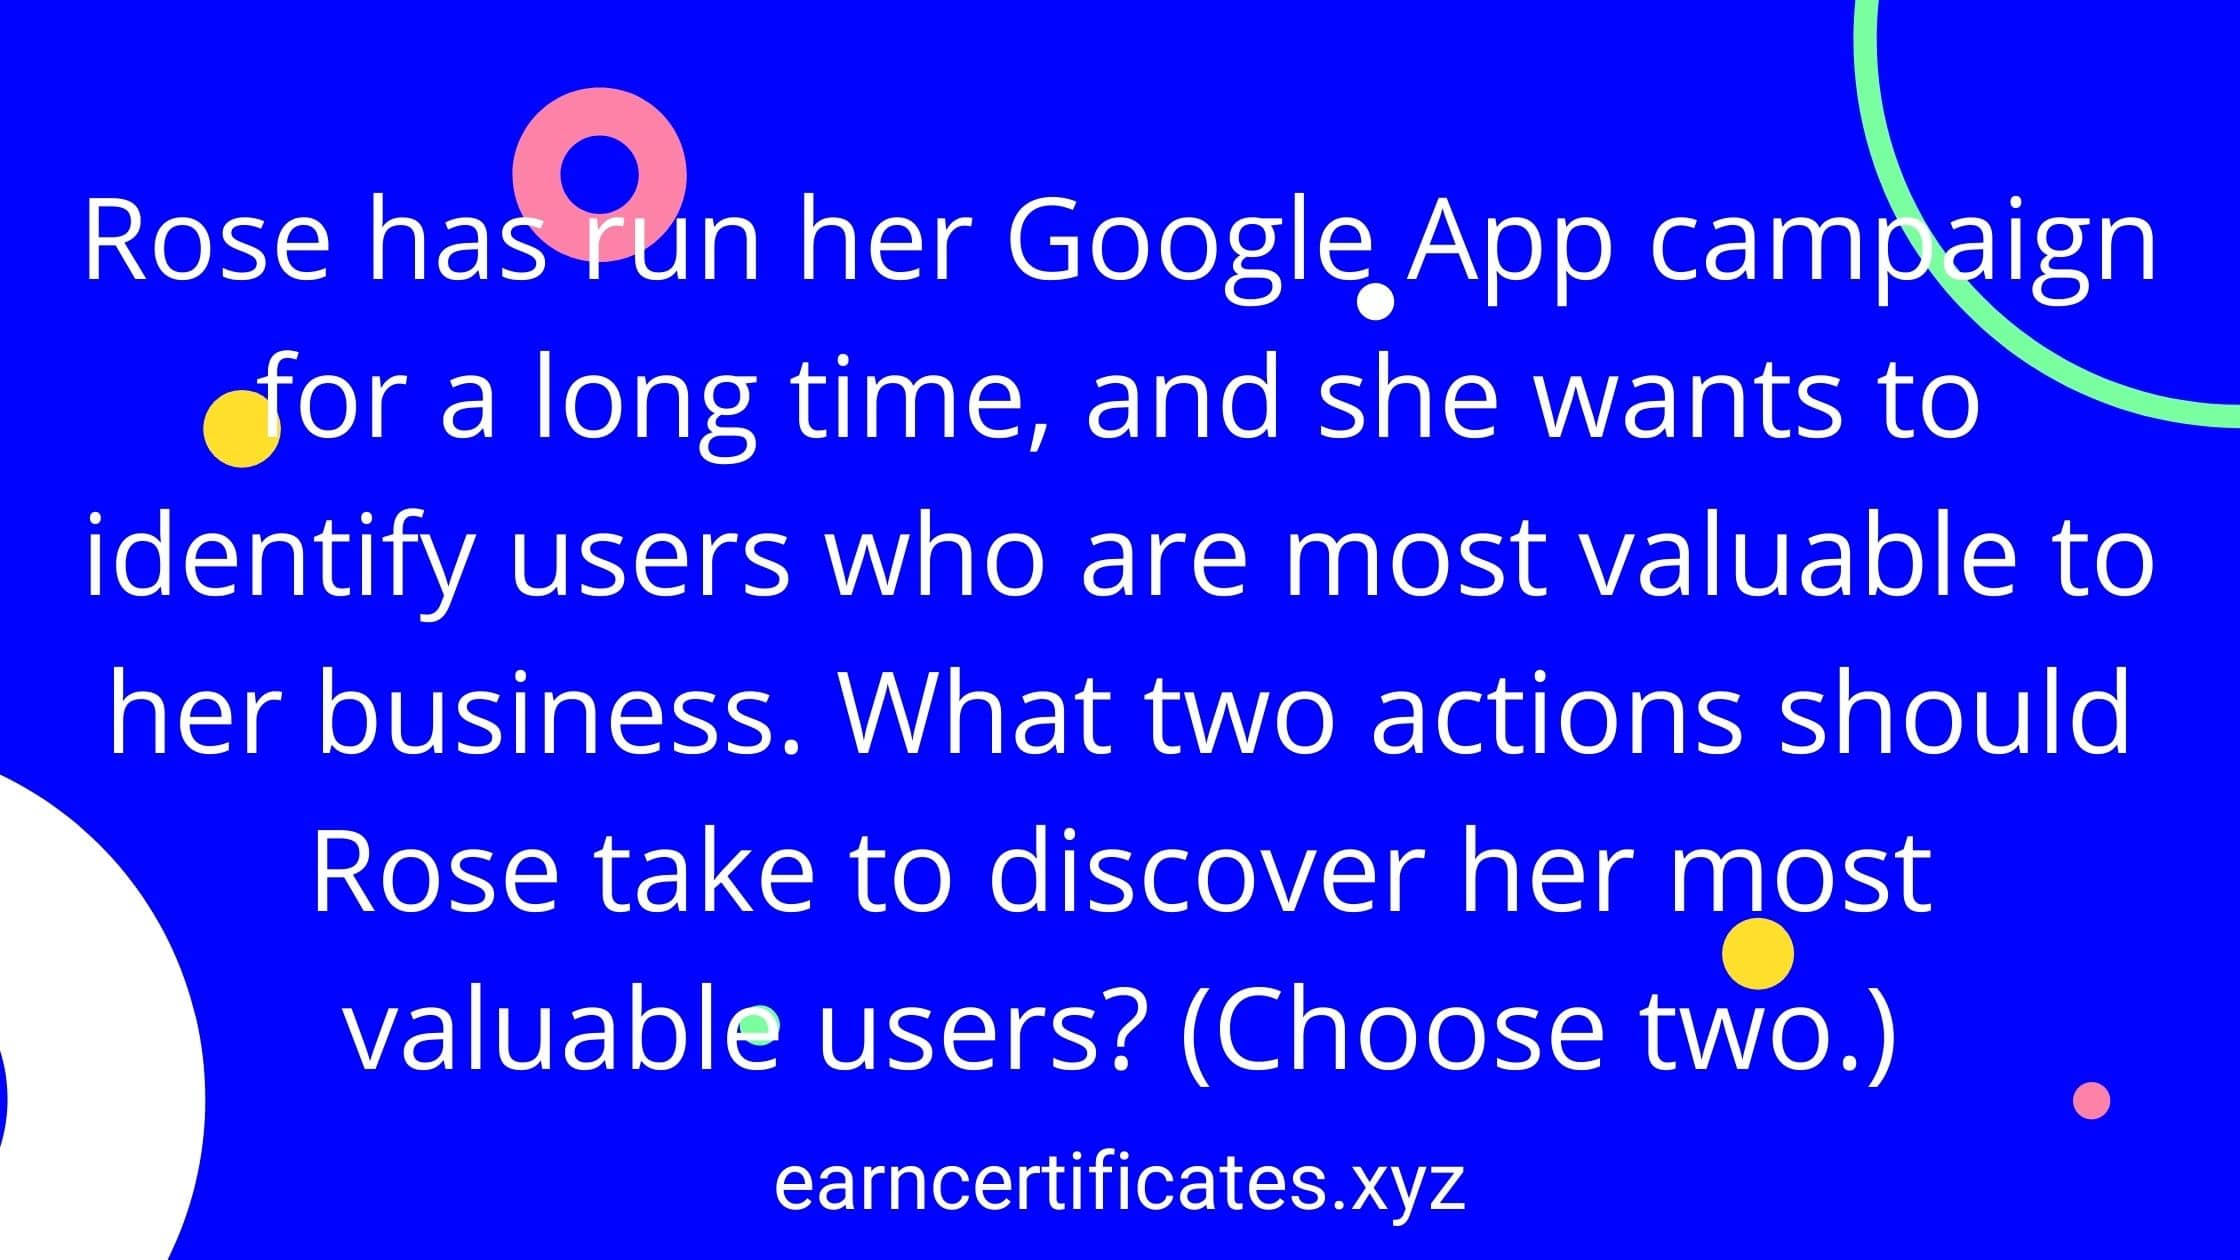 Rose has run her Google App campaign for a long time, and she wants to identify users who are most valuable to her business. What two actions should Rose take to discover her most valuable users? (Choose two.)